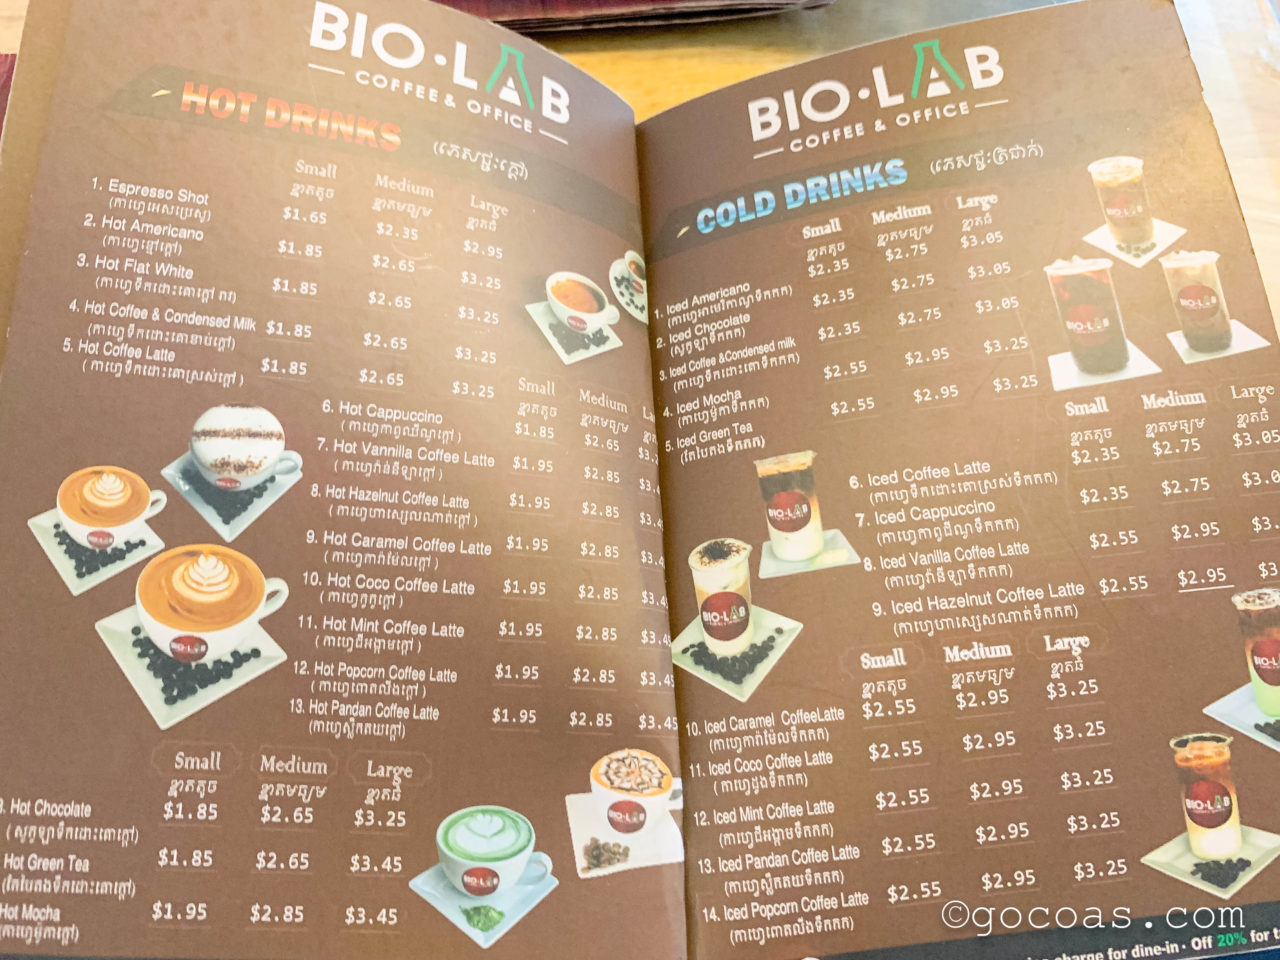 BIOLAB Coffee & Officeメニュー